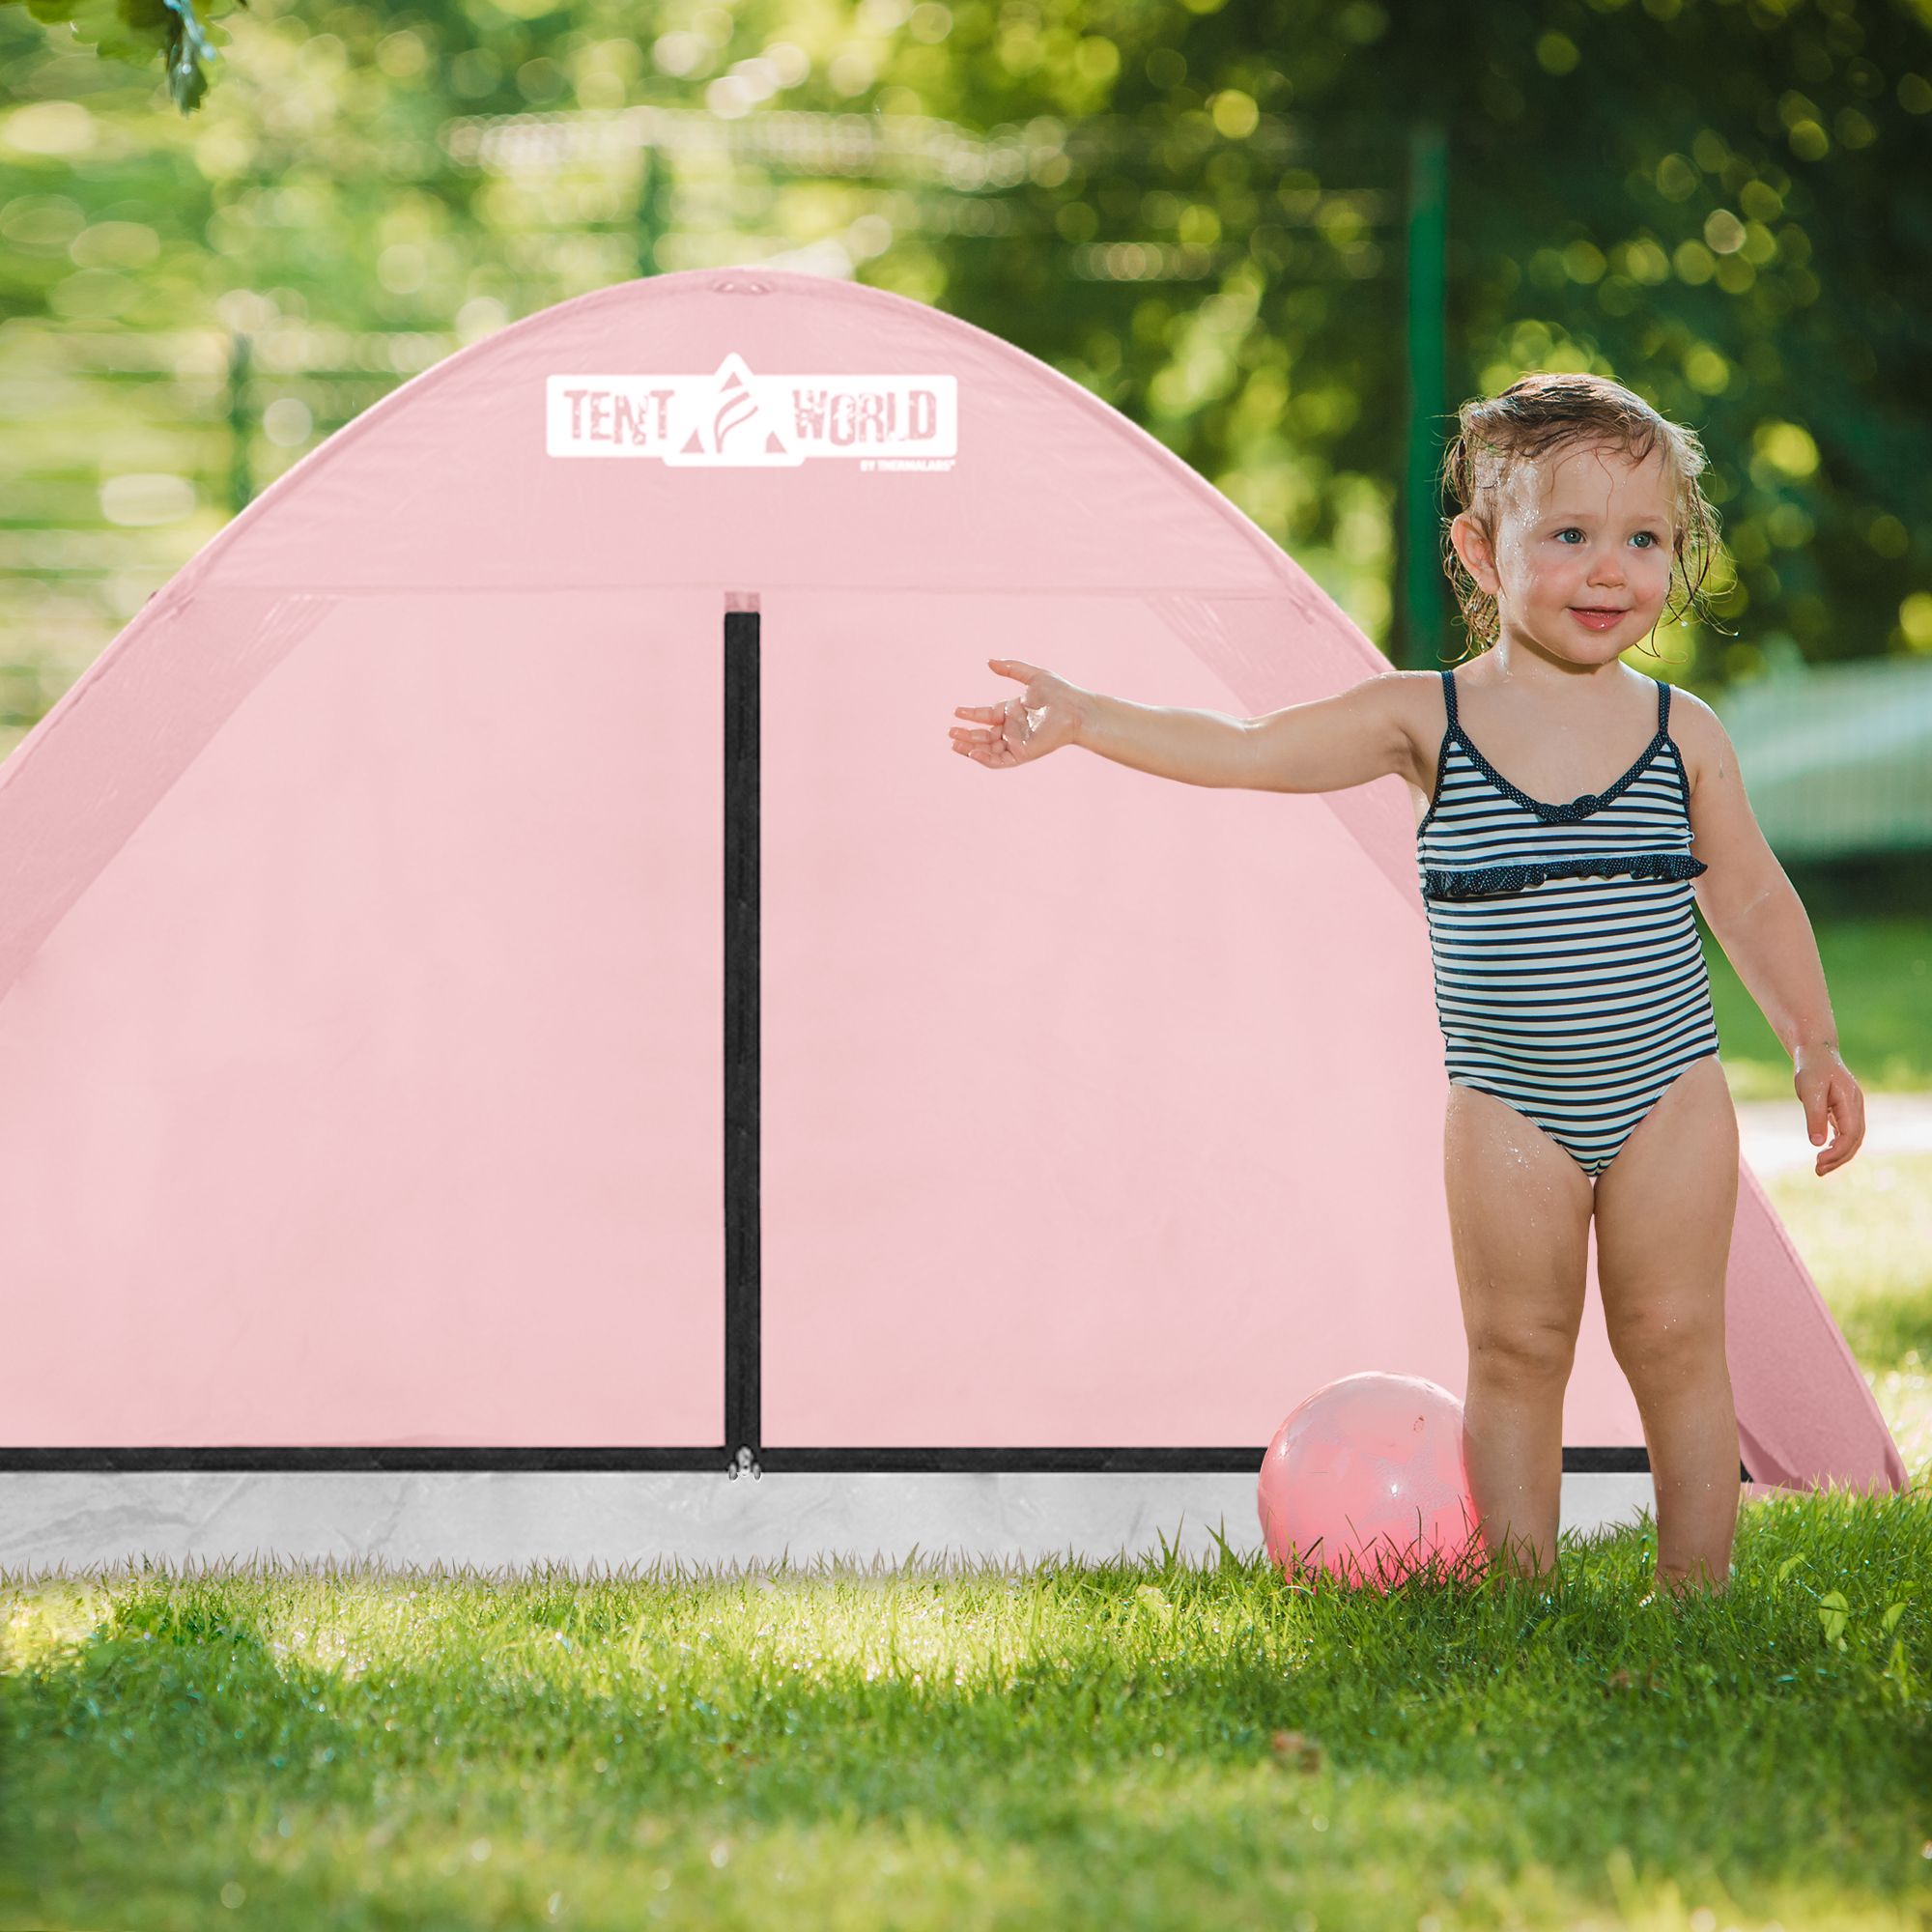 Mercury beach tent by Thermalabs Tent World